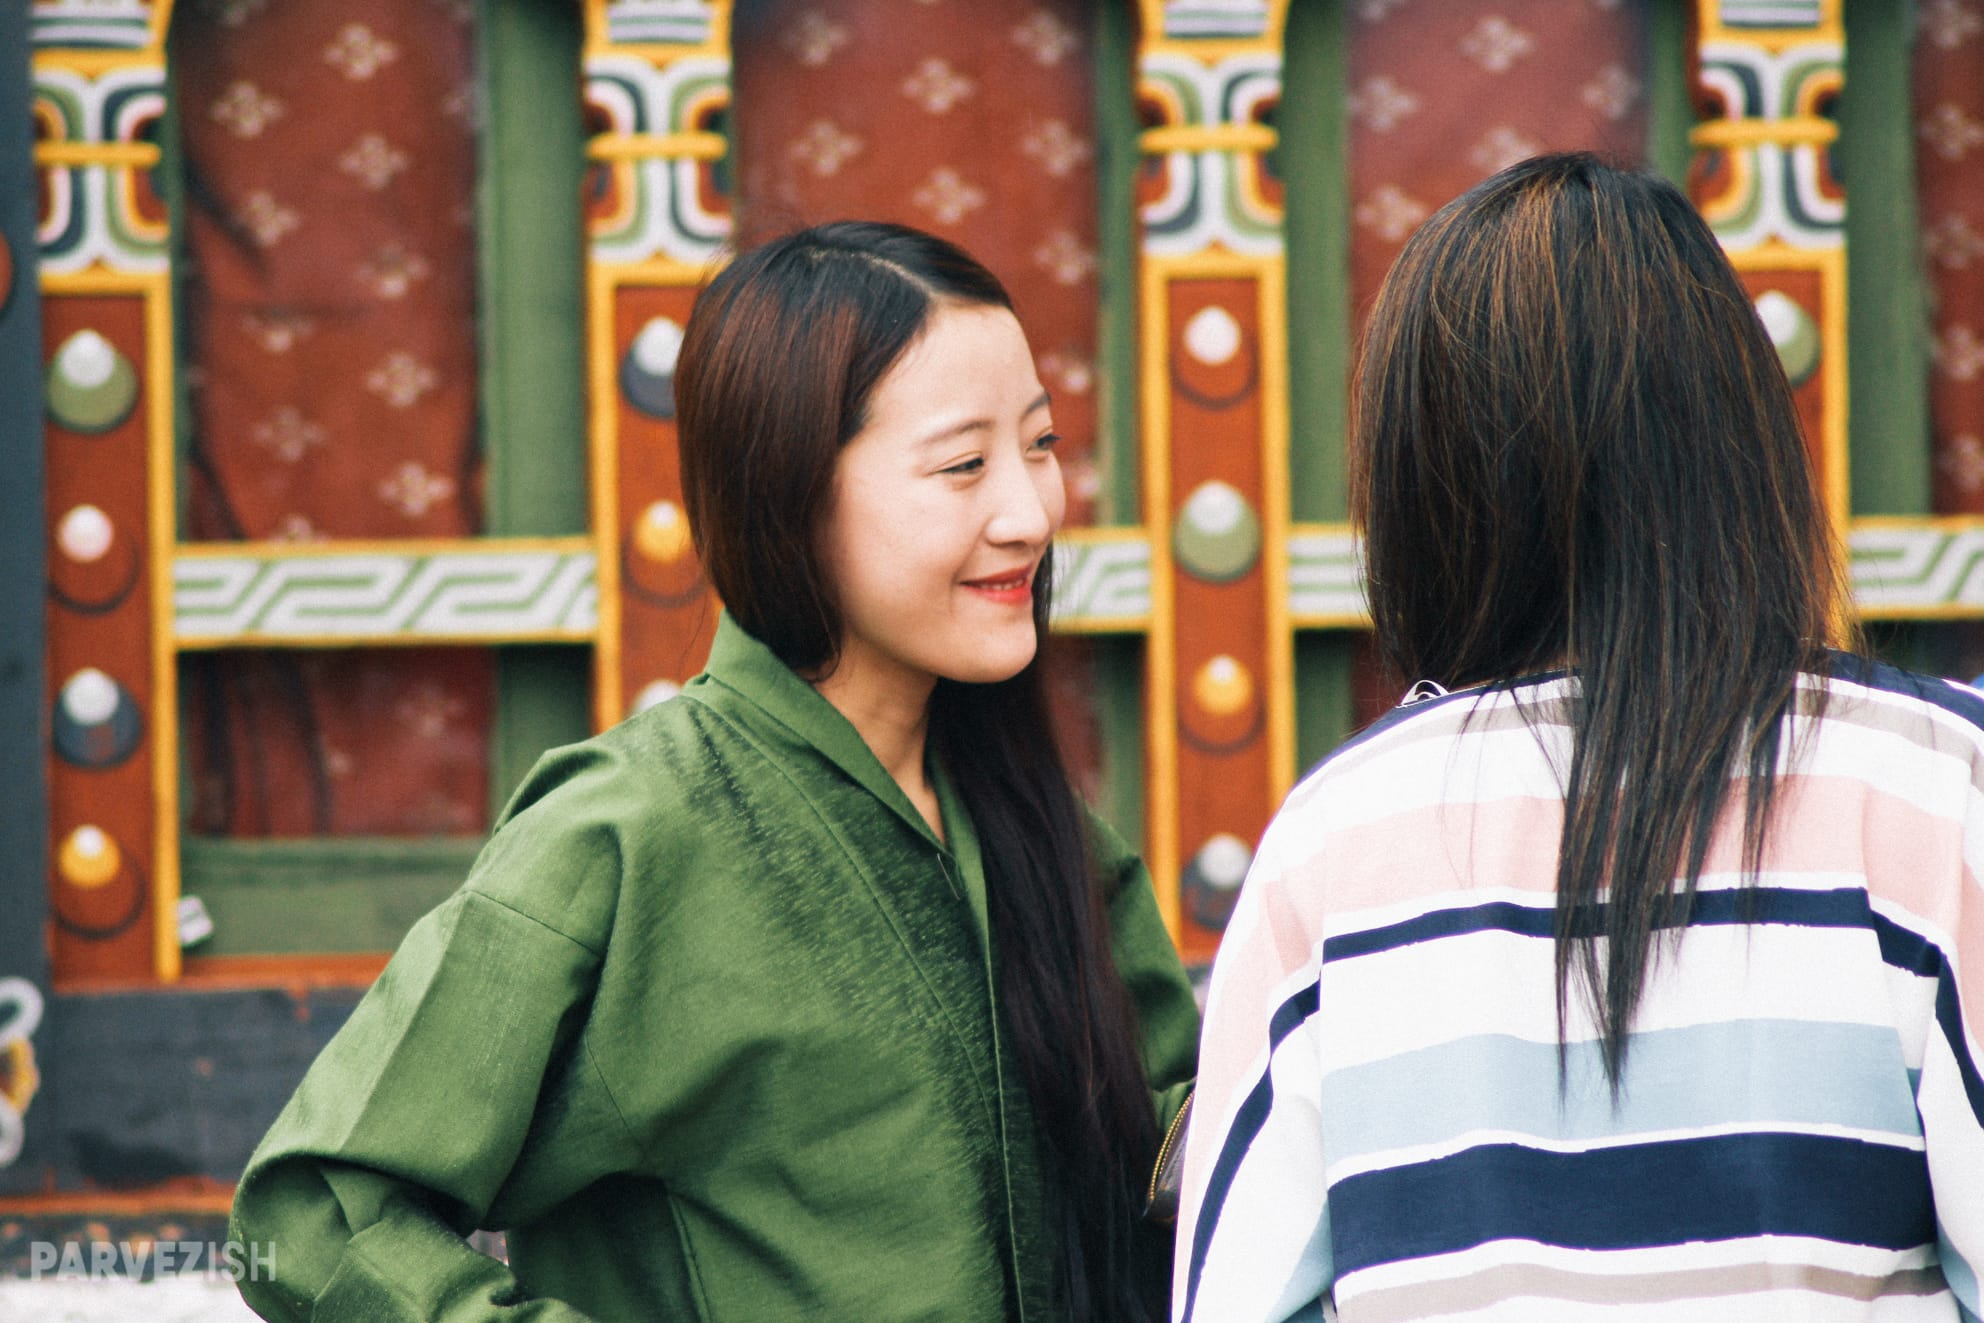 A Bhutanese Girl Engaging in Conversation with Tourists